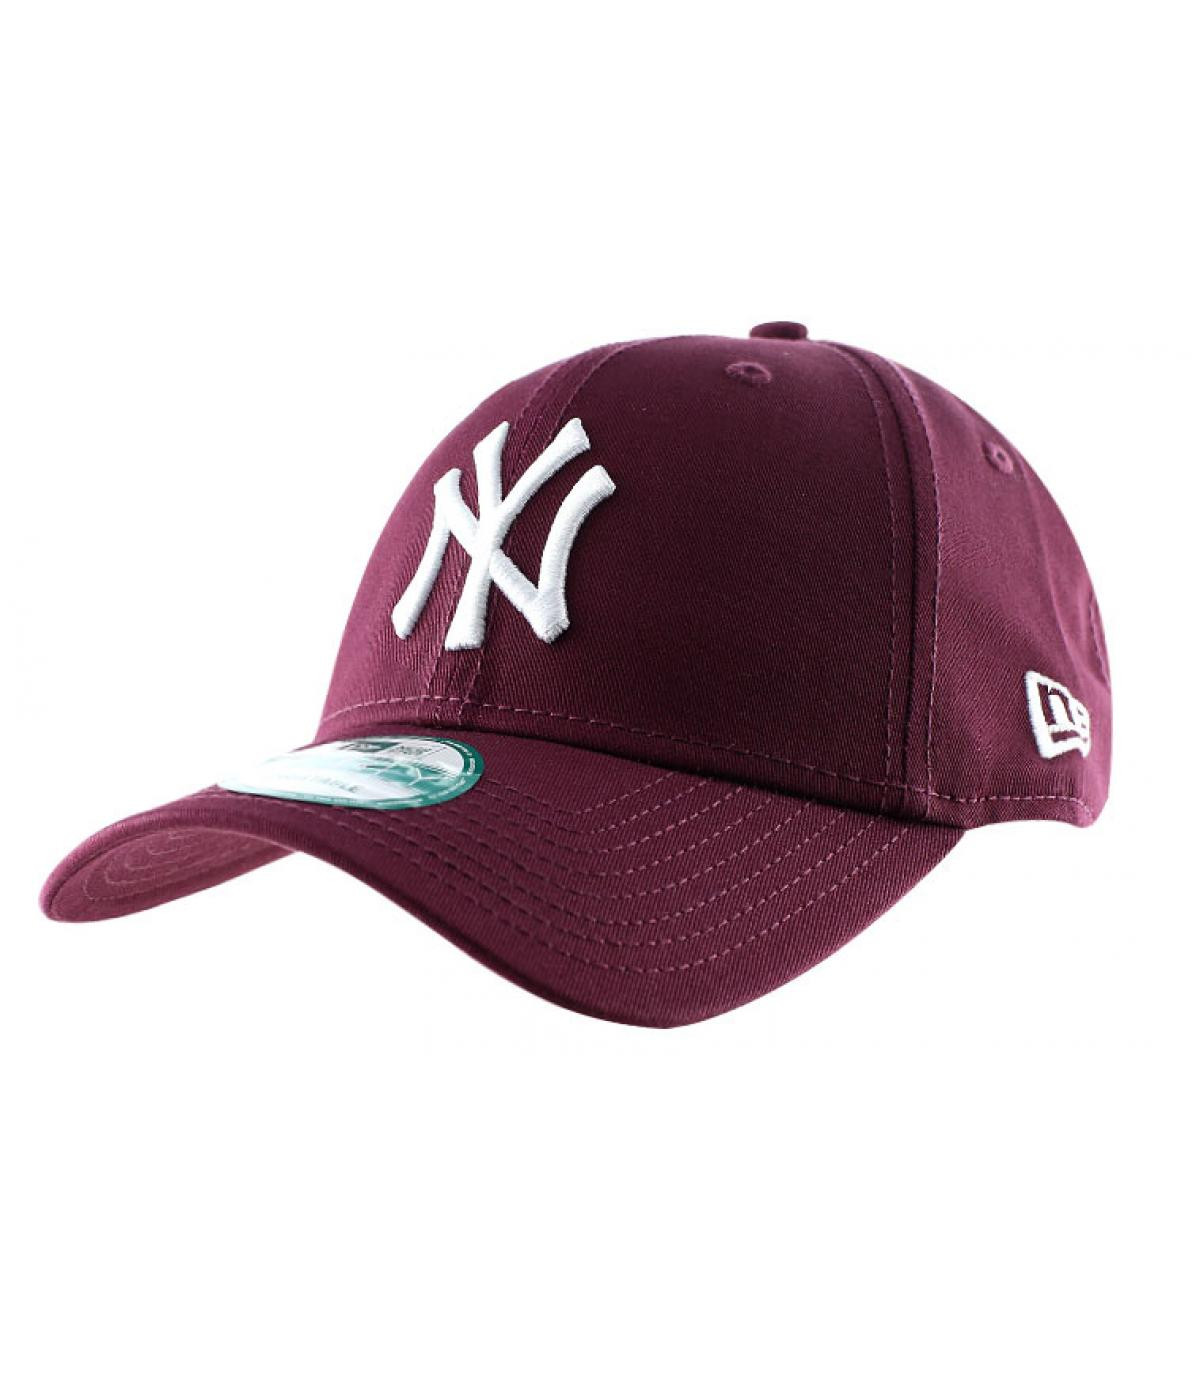 Details League essential Ny maroon - afbeeling 2